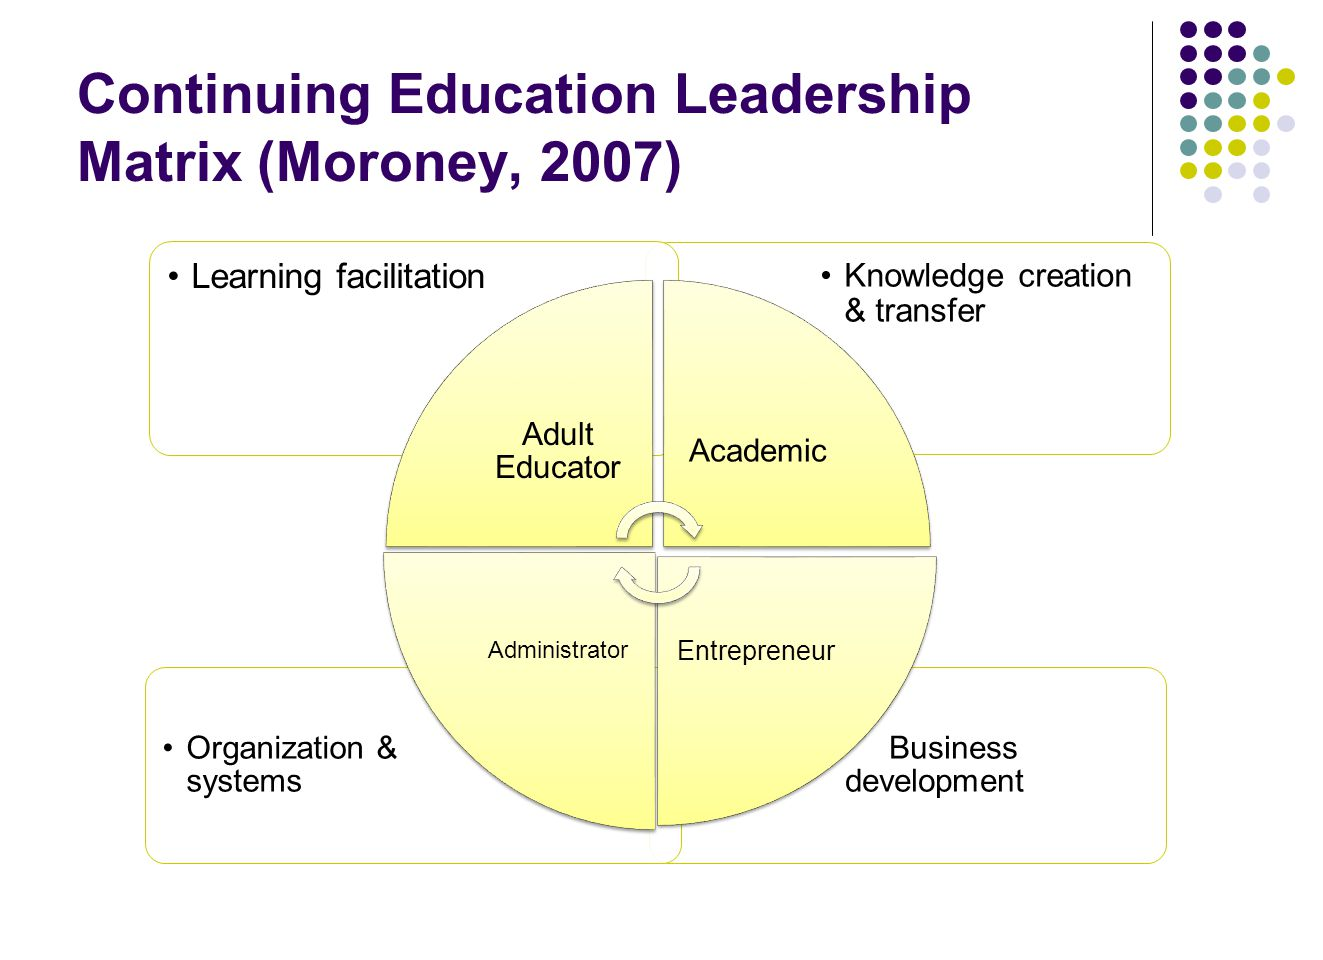 Continuing Education Leadership Matrix (Moroney, 2007)